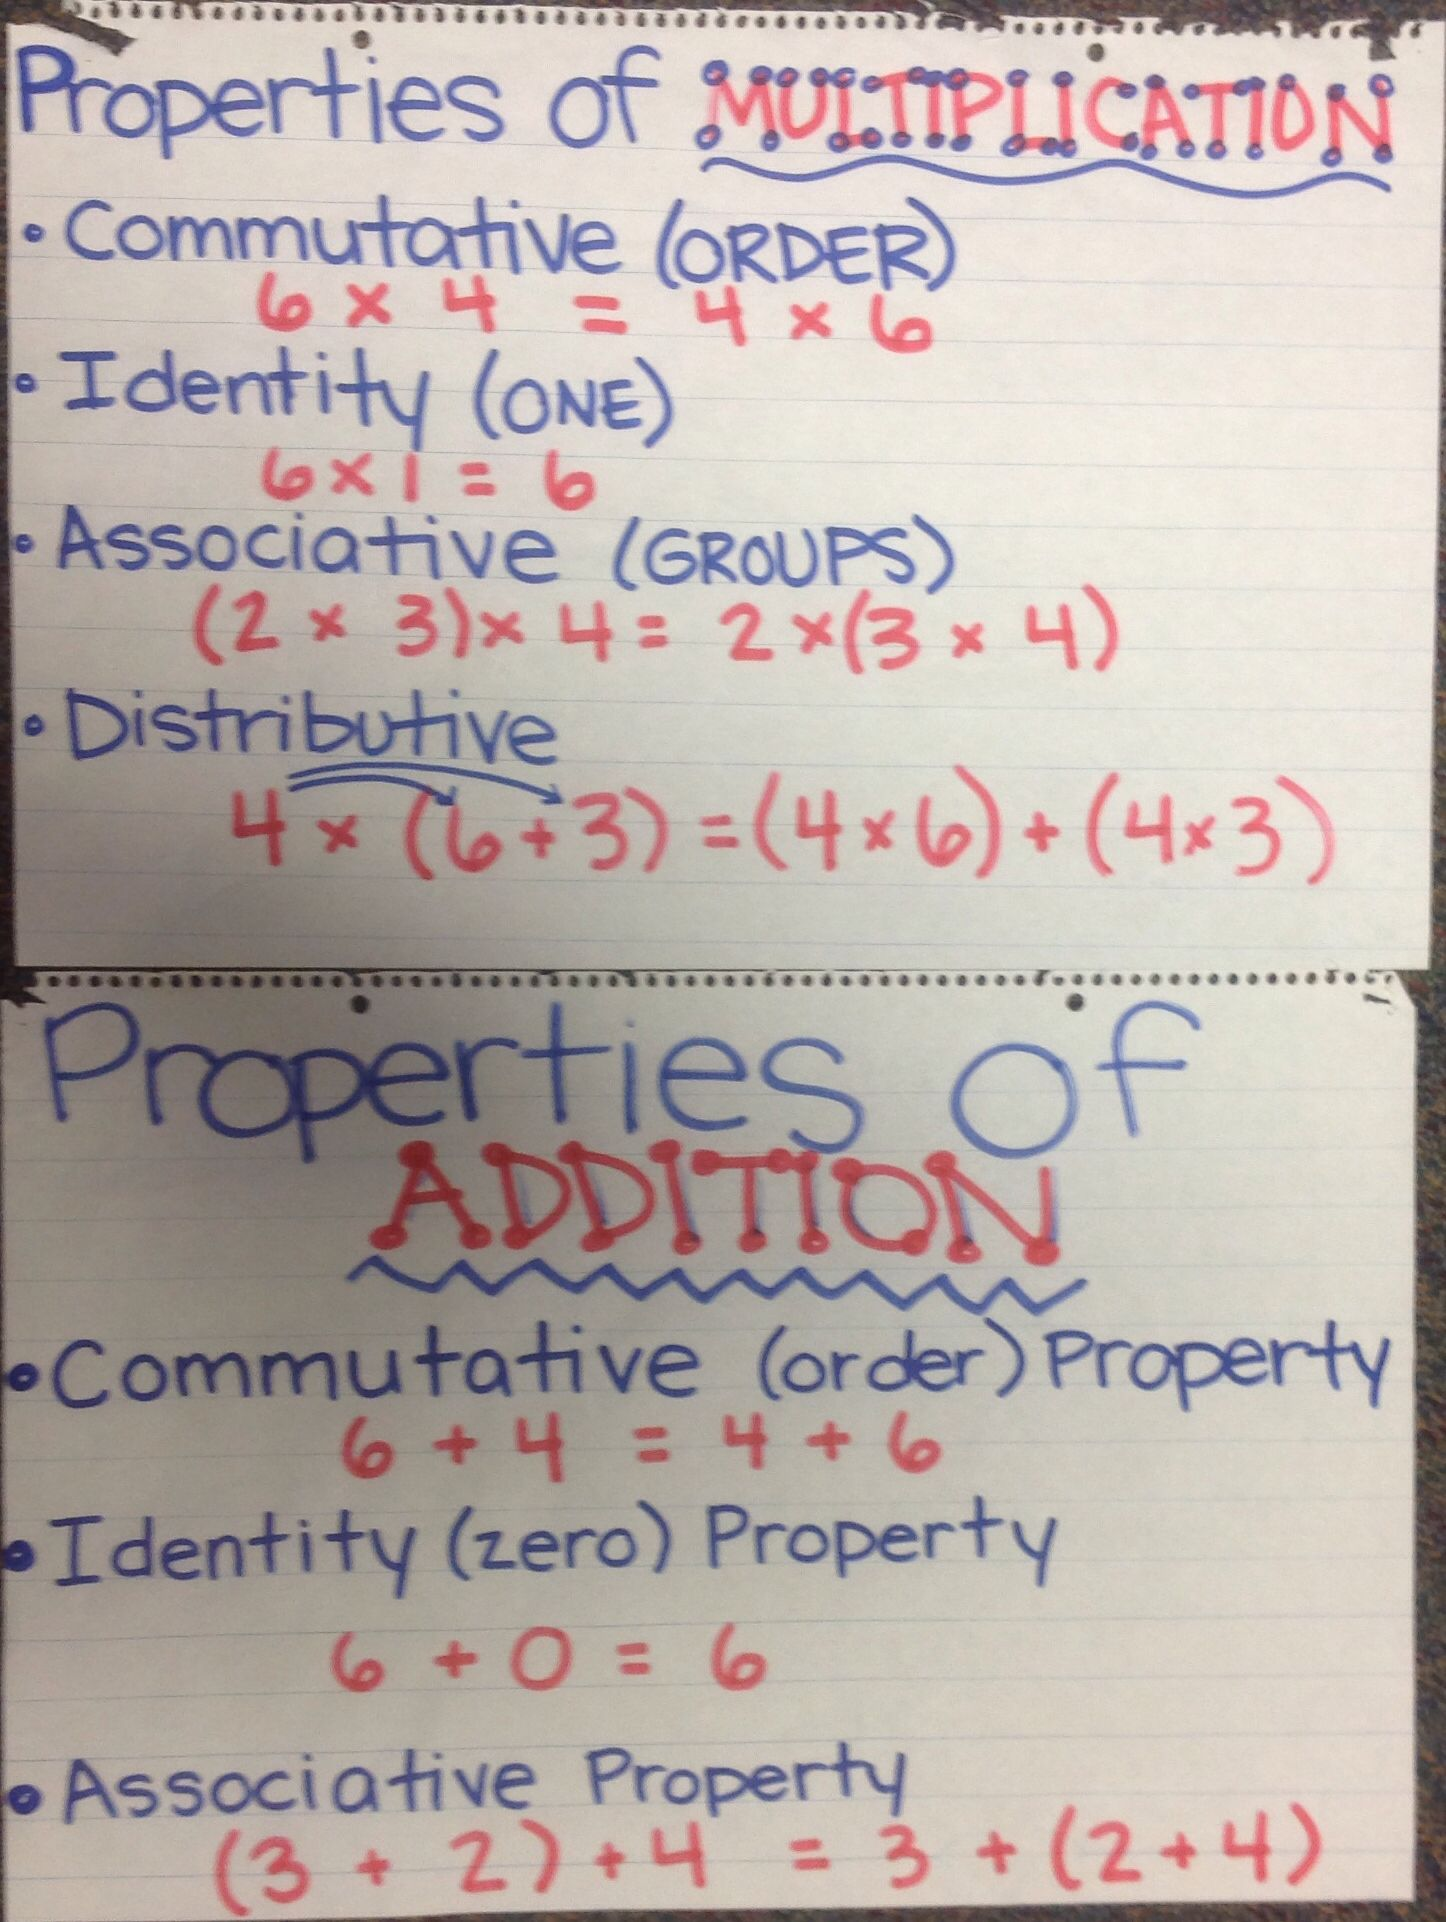 Properties Of Multiplication And Addition Mrs Ashley S Math Anchor Charts Math Anchor Charts Math Properties Math Charts